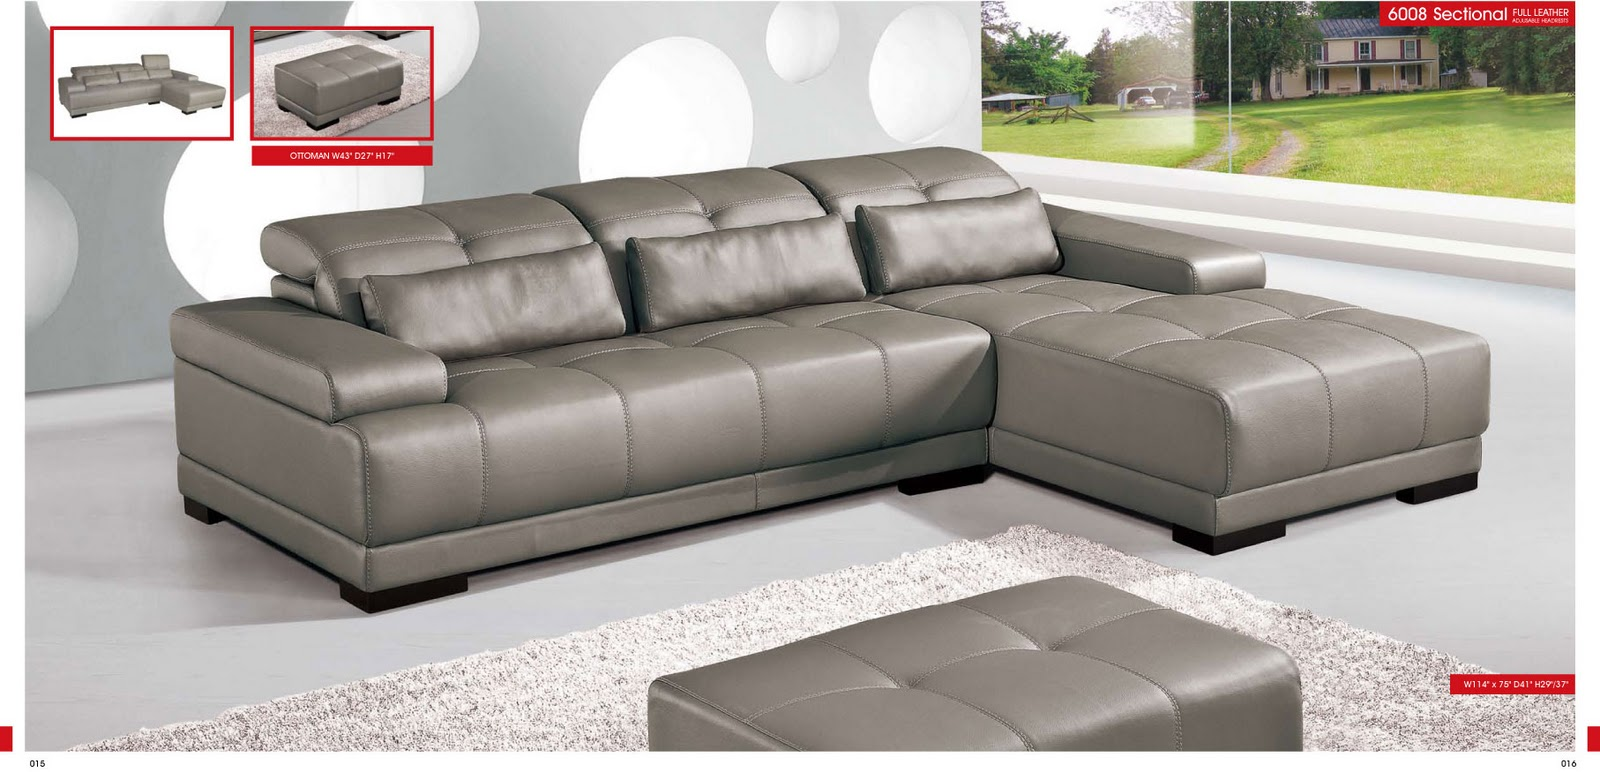 Esf 6008 sectional royal furniture outlet 215 355 for Drawing room furniture